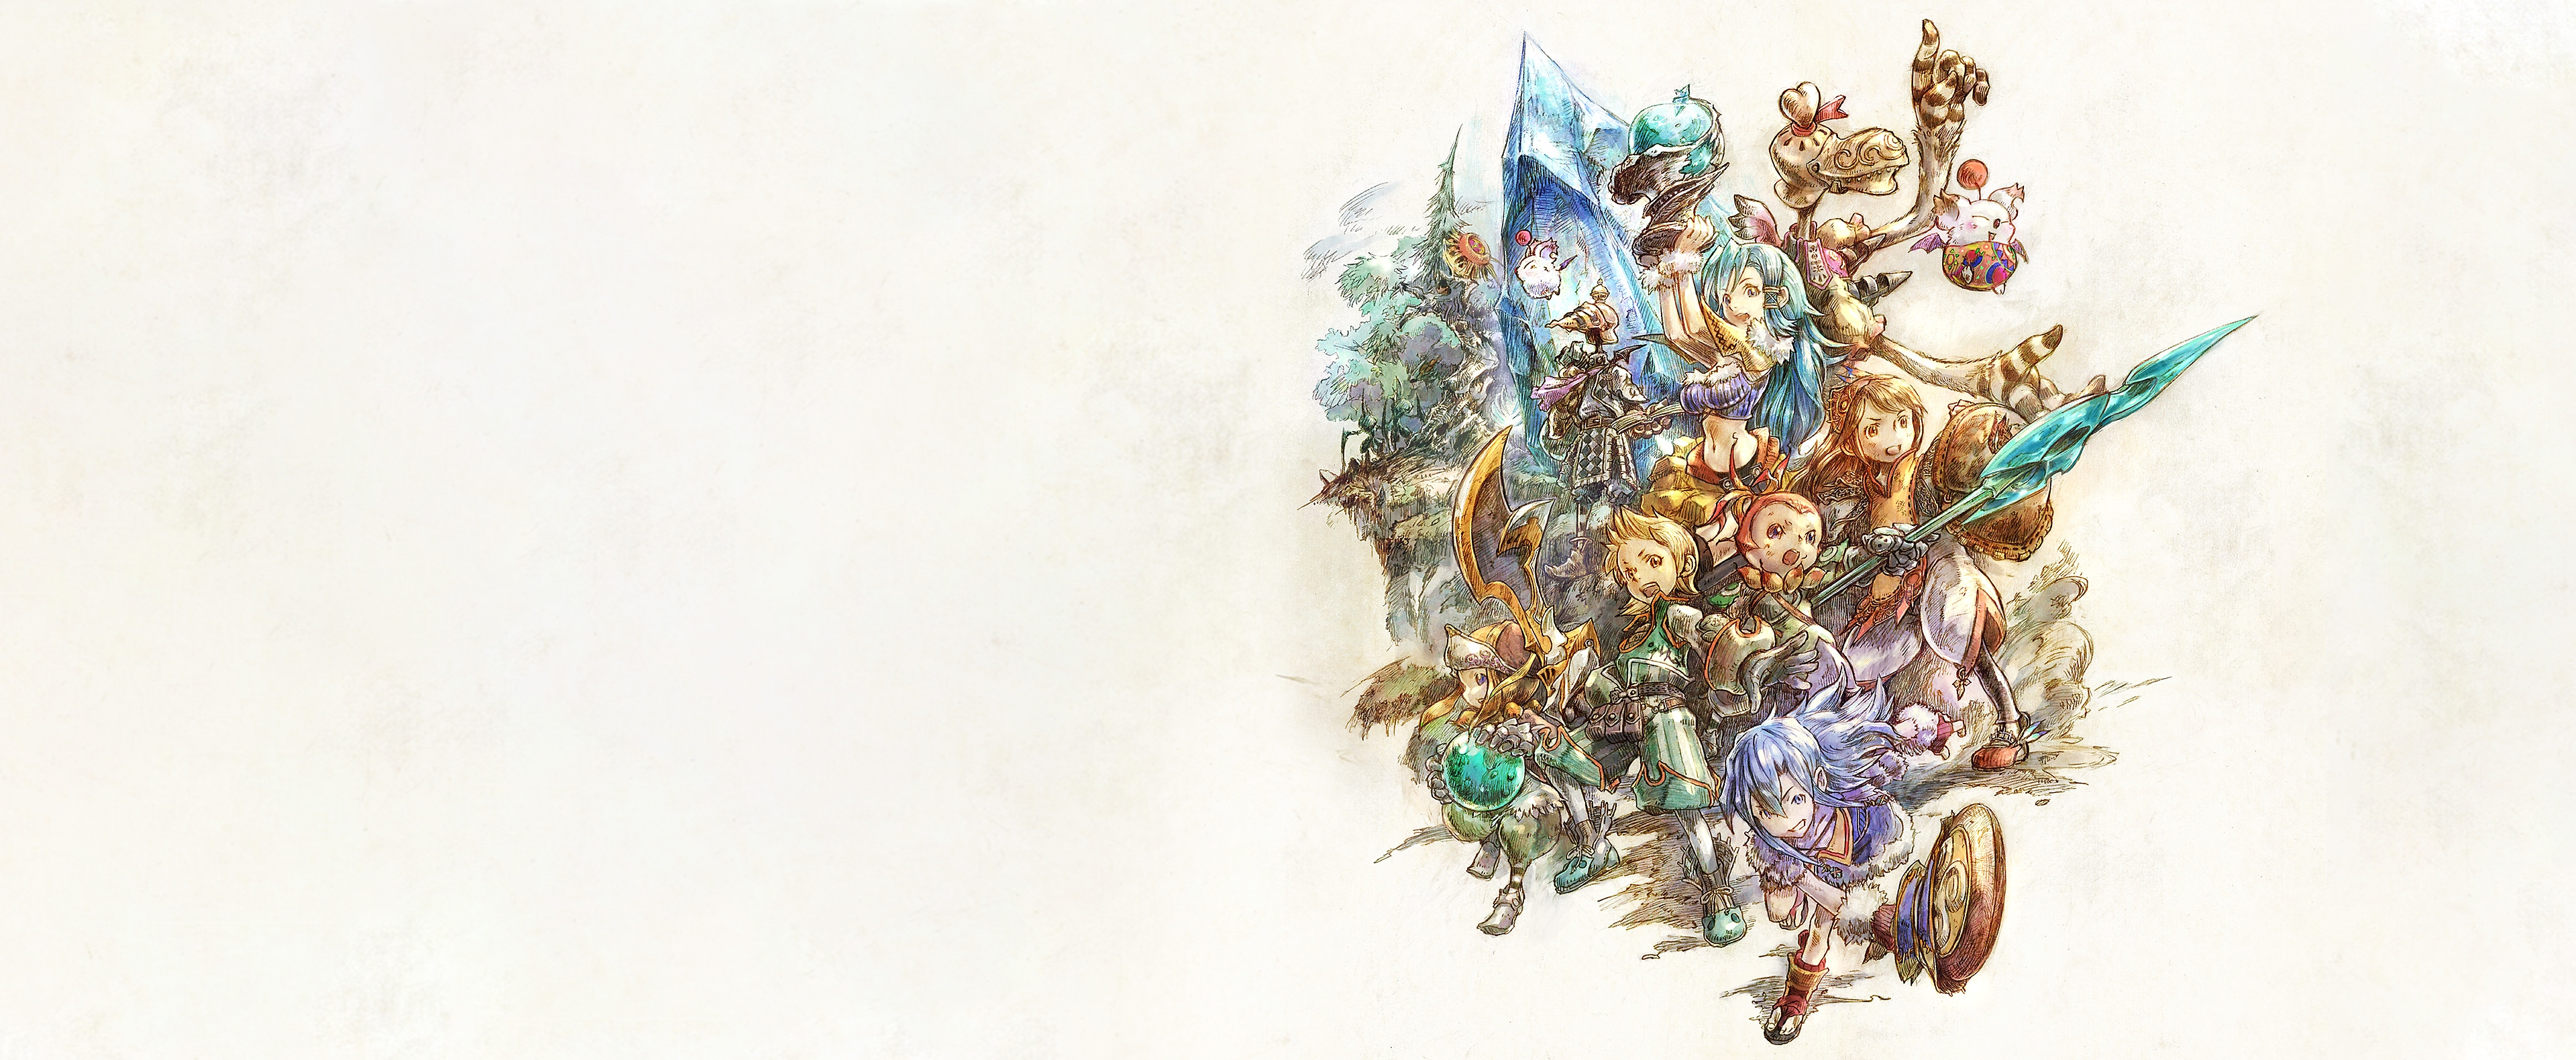 Final Fantasy Crystal Chronicles Remastered Edition fő kulcsgrafika.